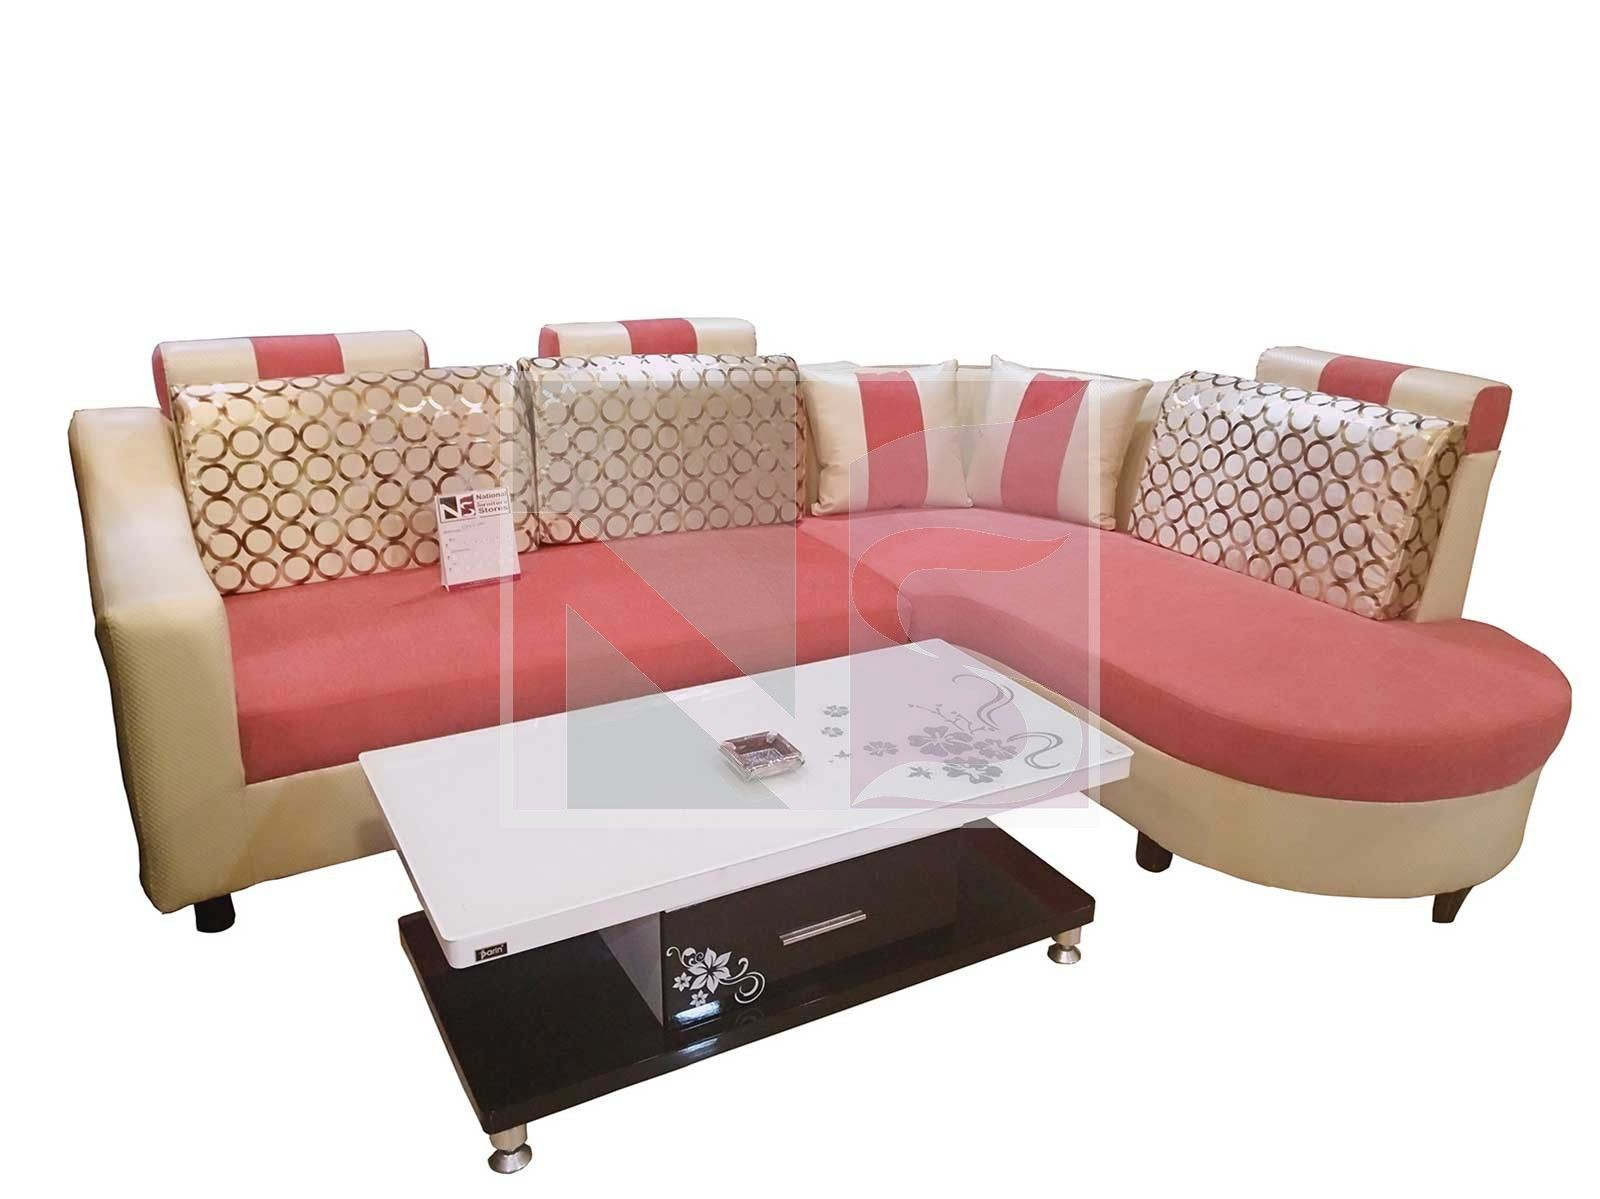 lovely sofa table with drawers online-Incredible sofa Table with Drawers Model